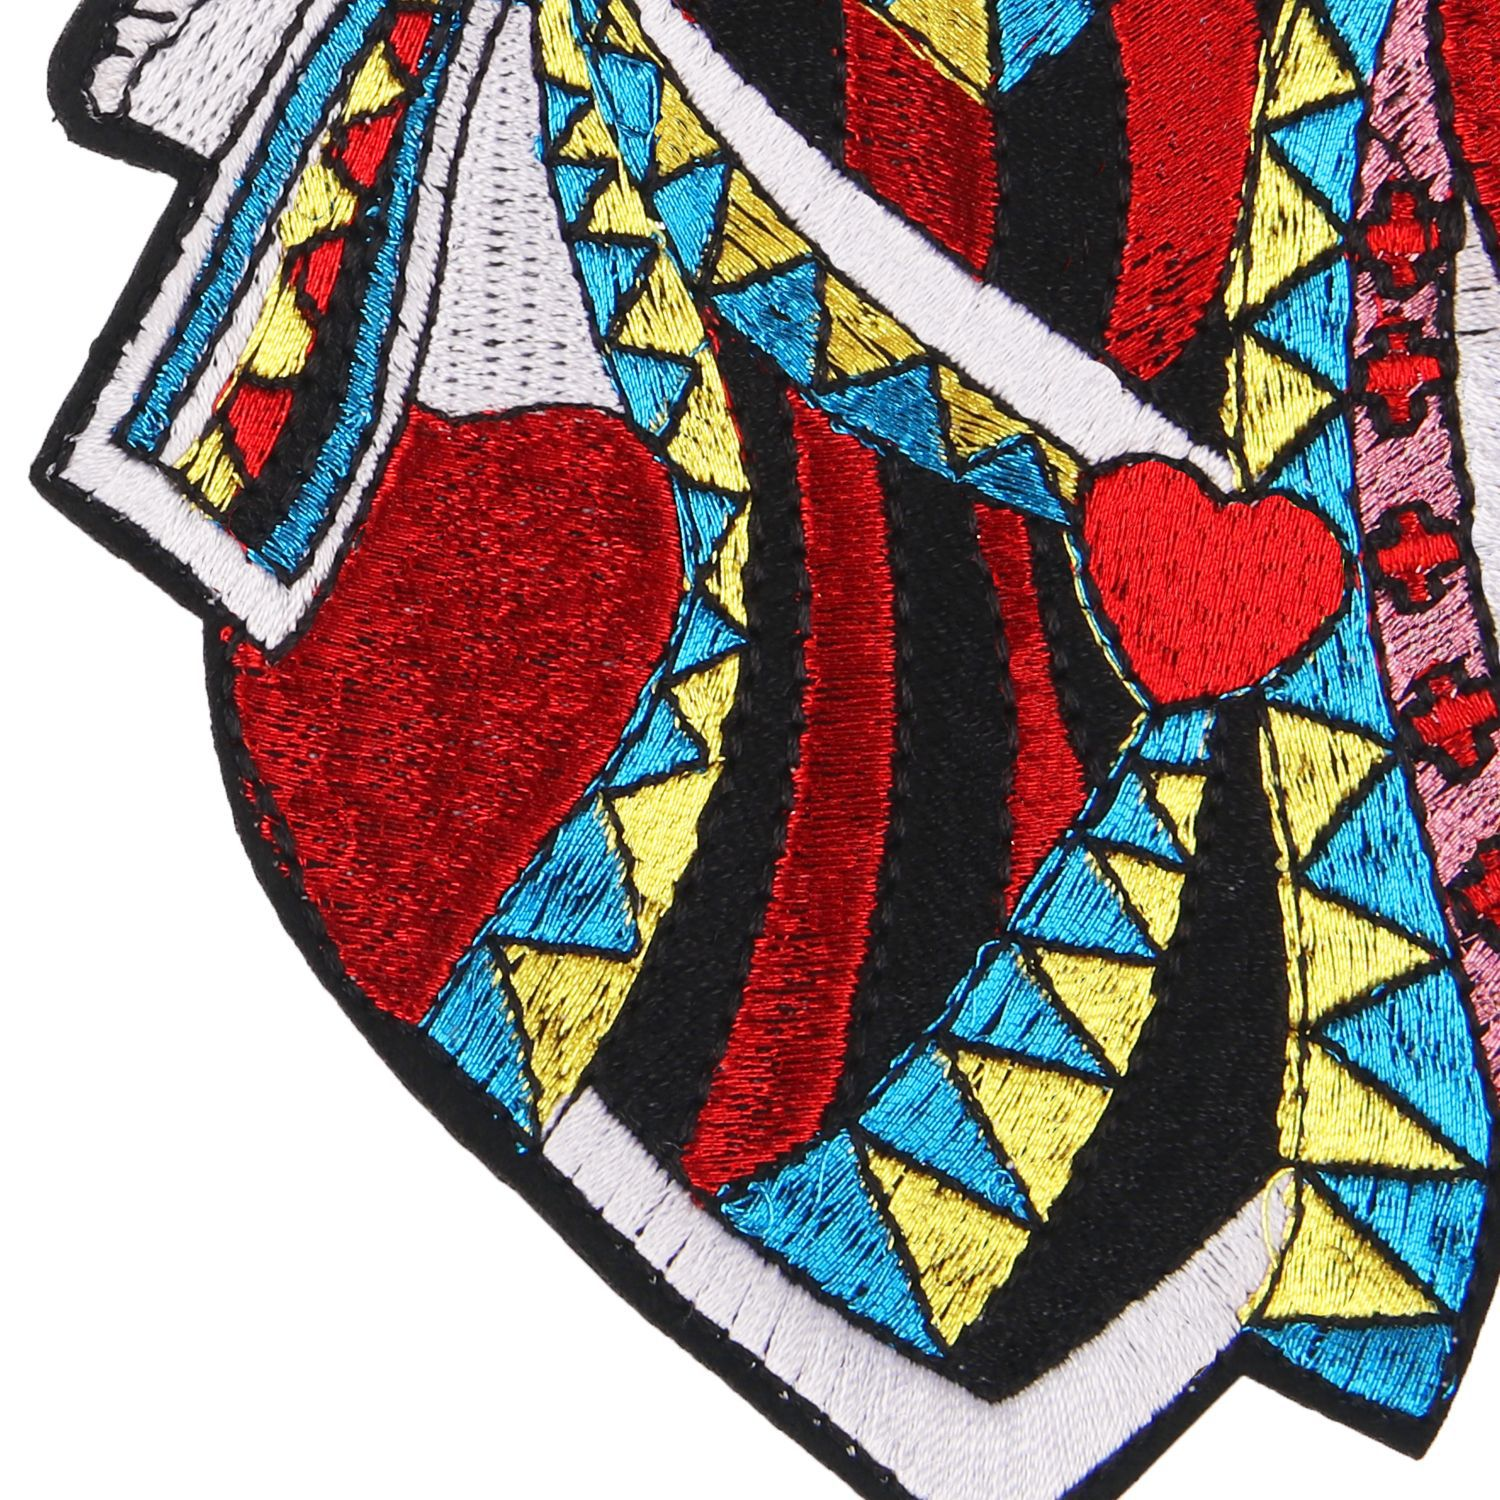 embroidery heart flowers persons patches for jackets badges for jeans cartoon applique for coats A225 in Patches from Home Garden